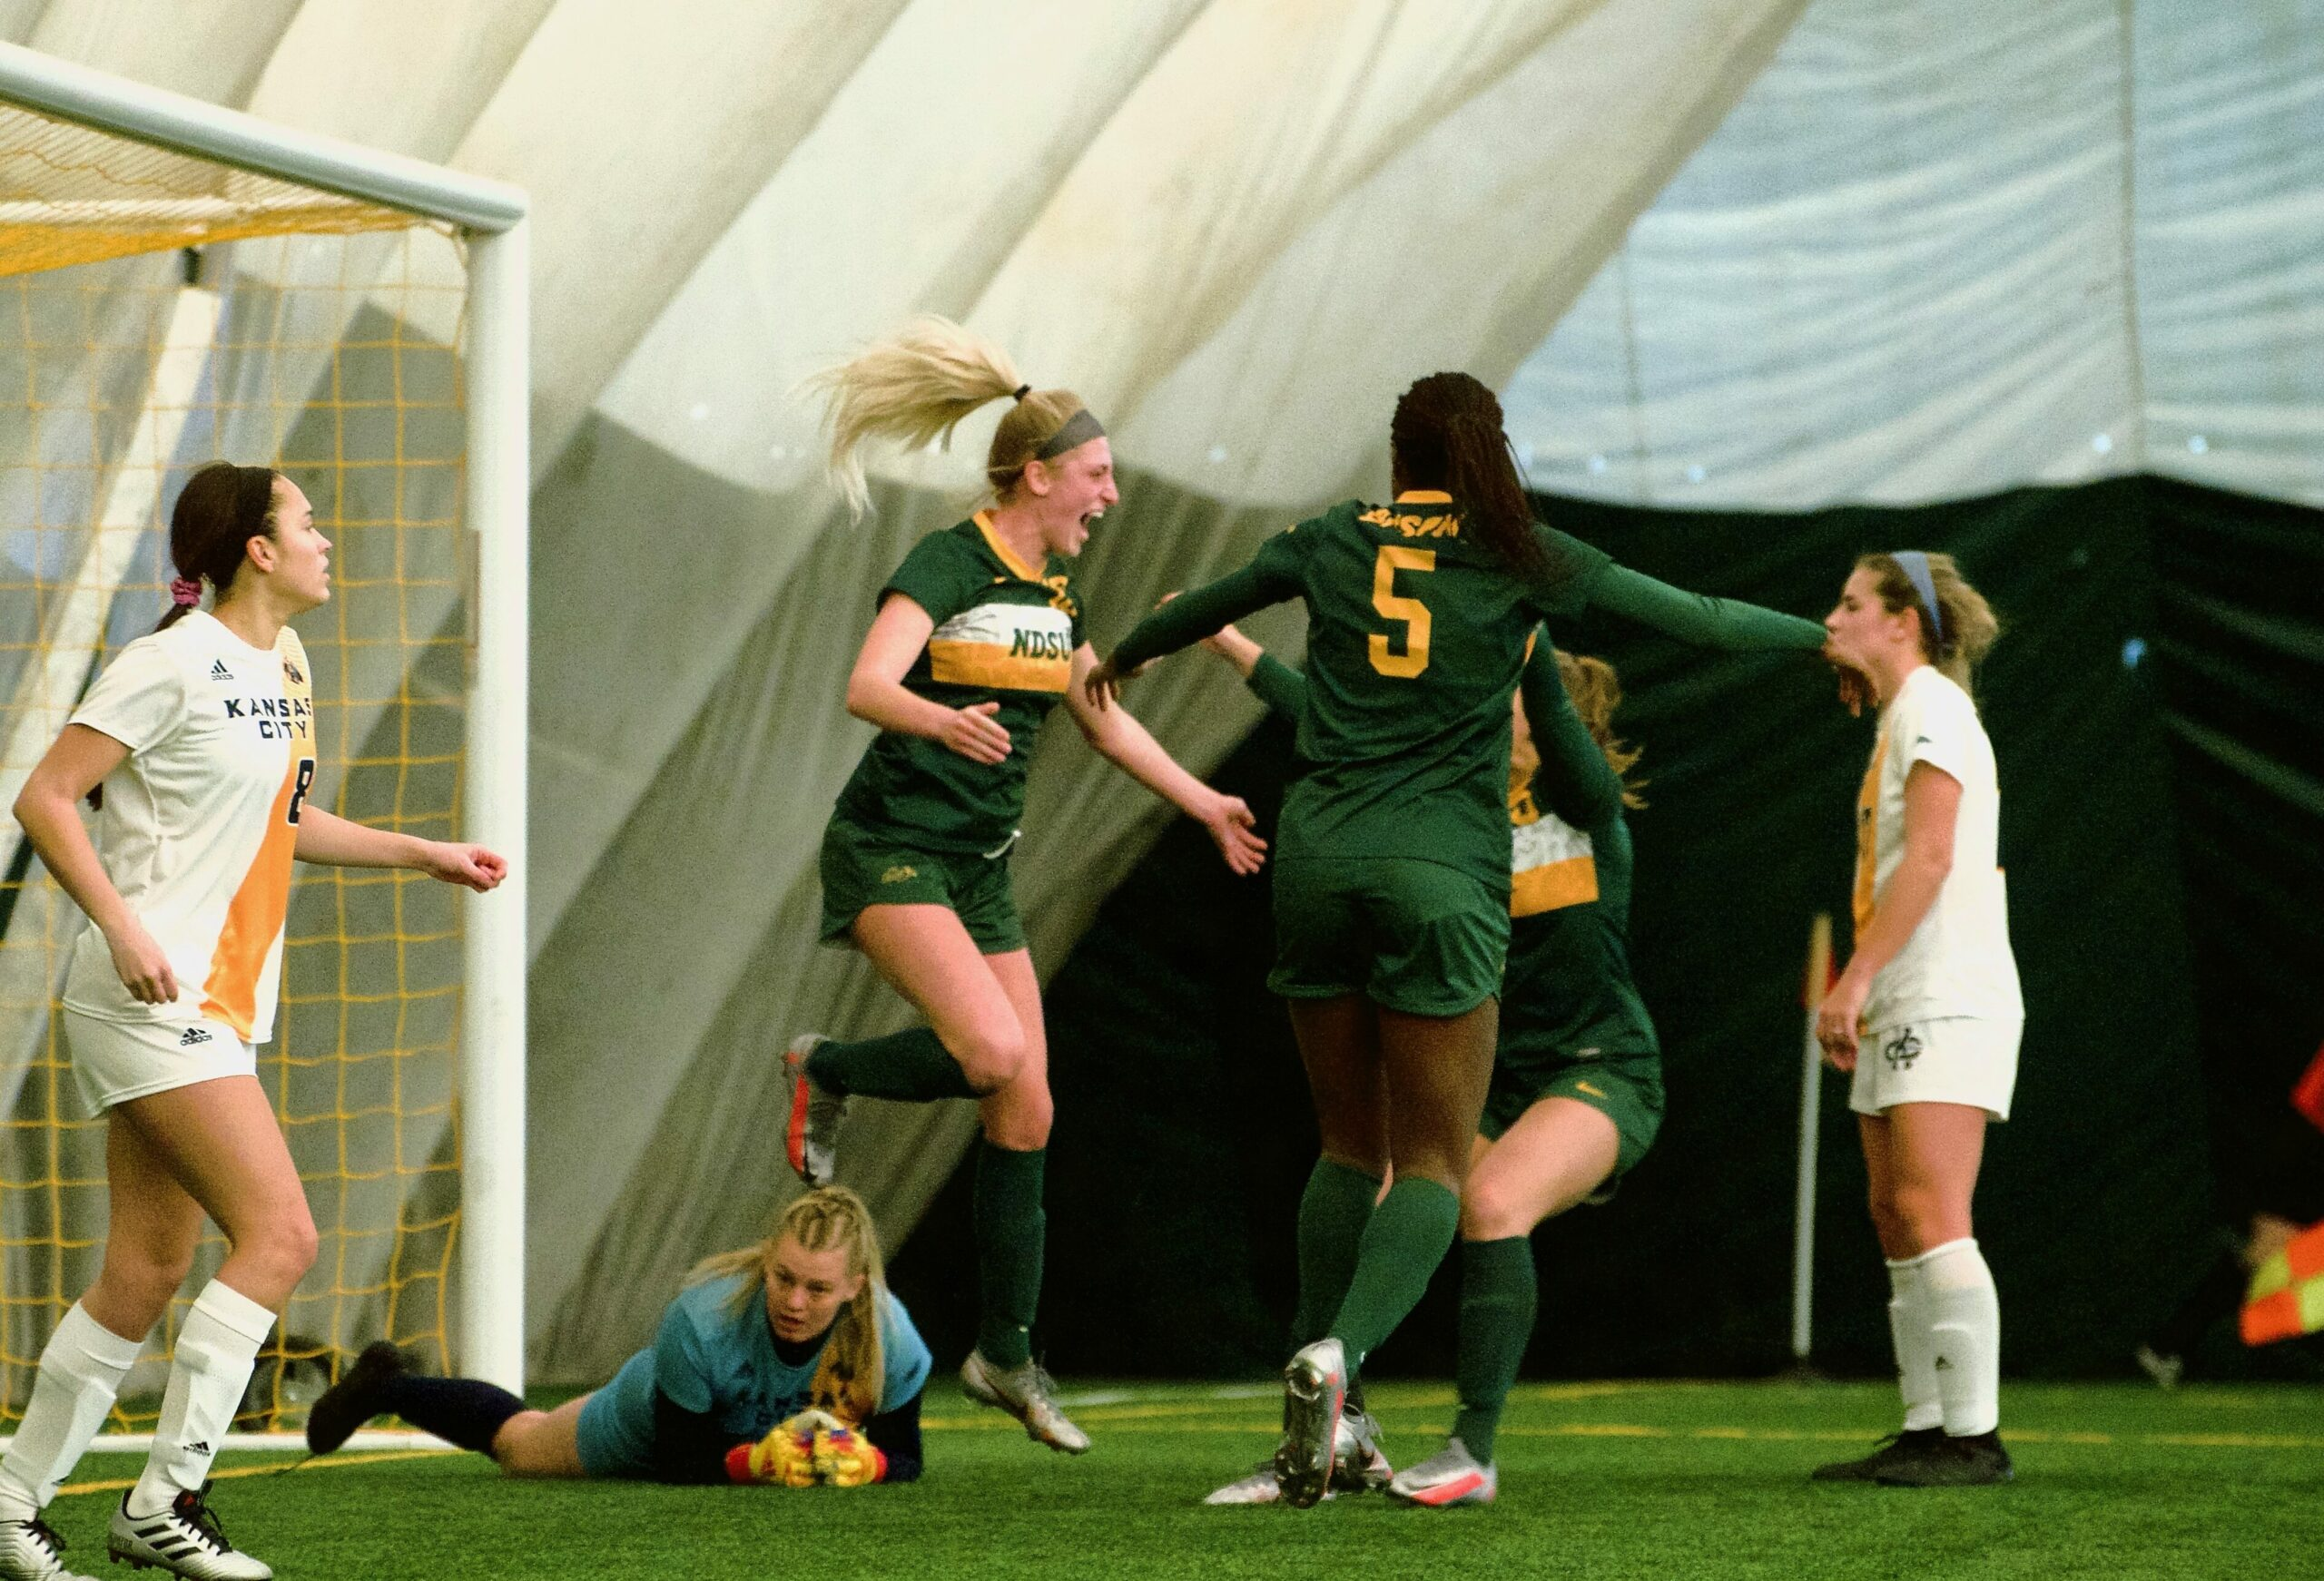 Busy weekend in Bison sports